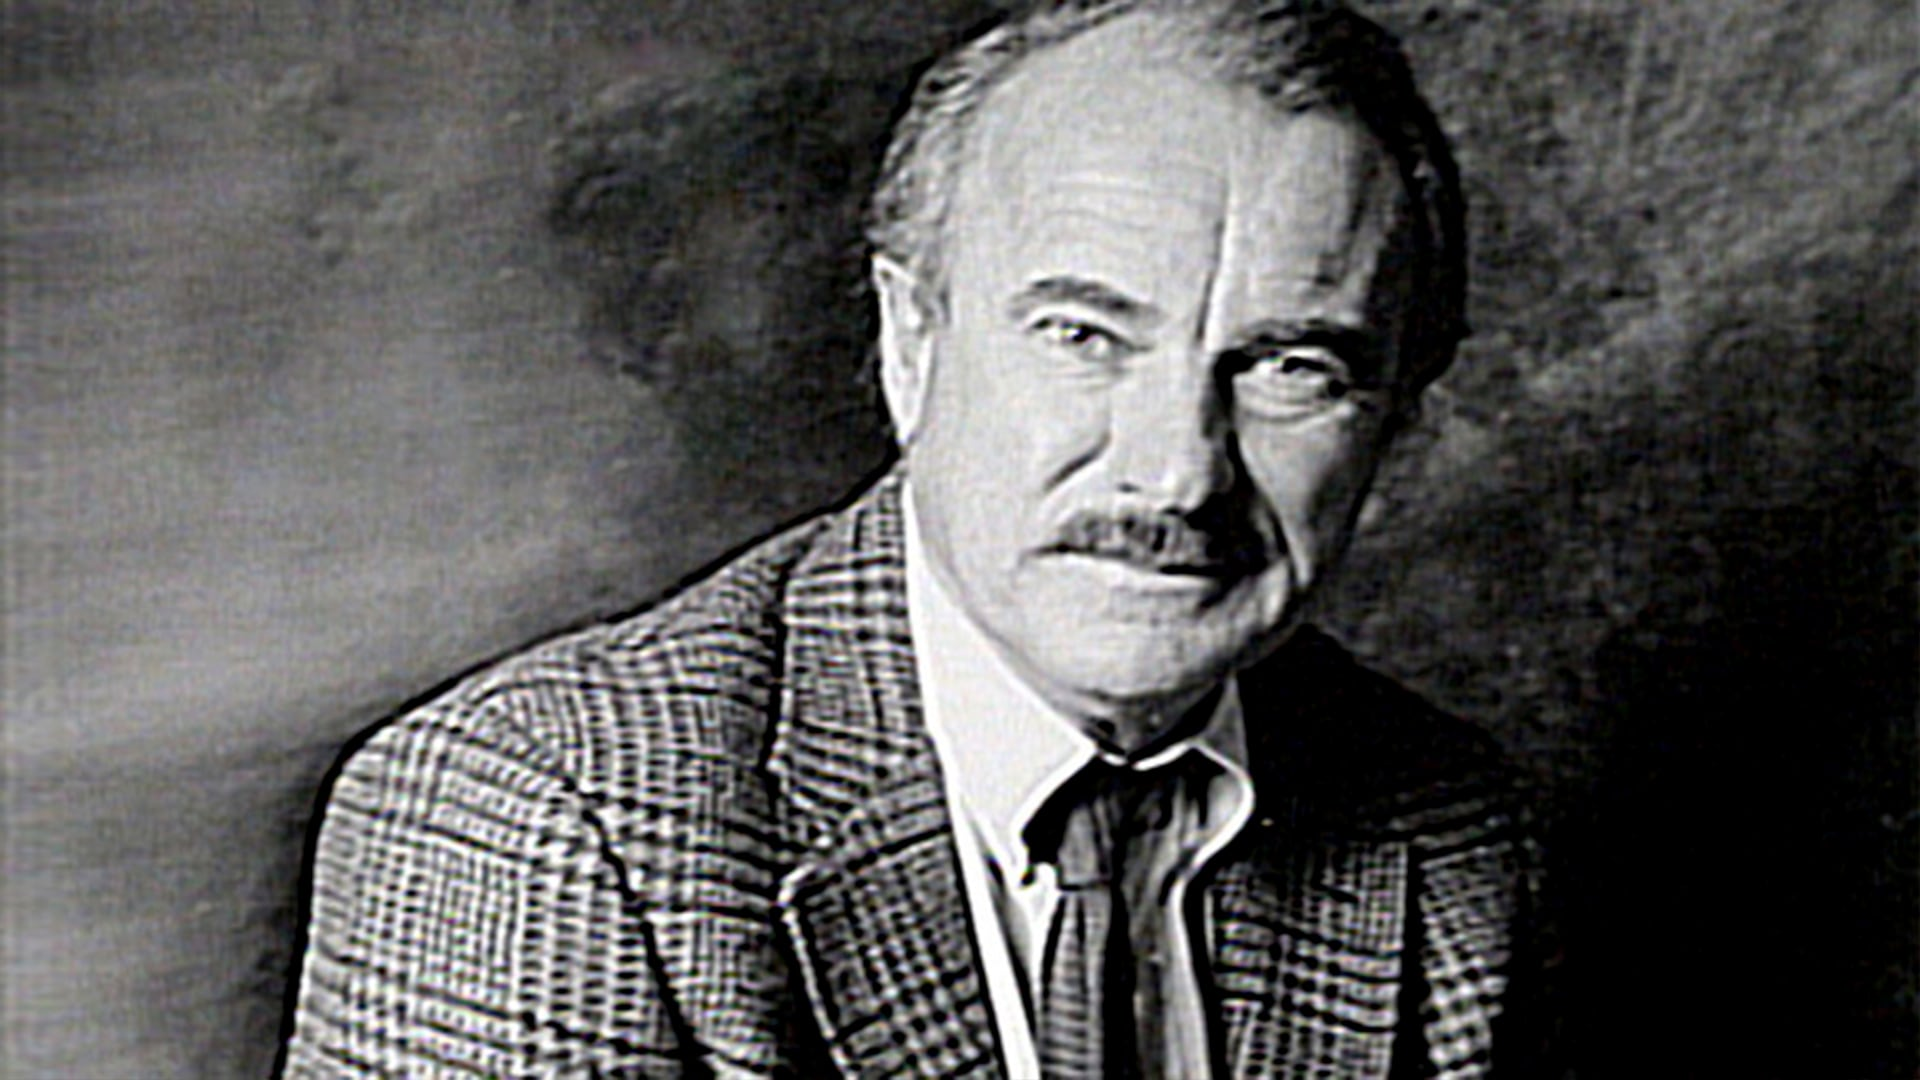 Dabney Coleman: October 31, 1987